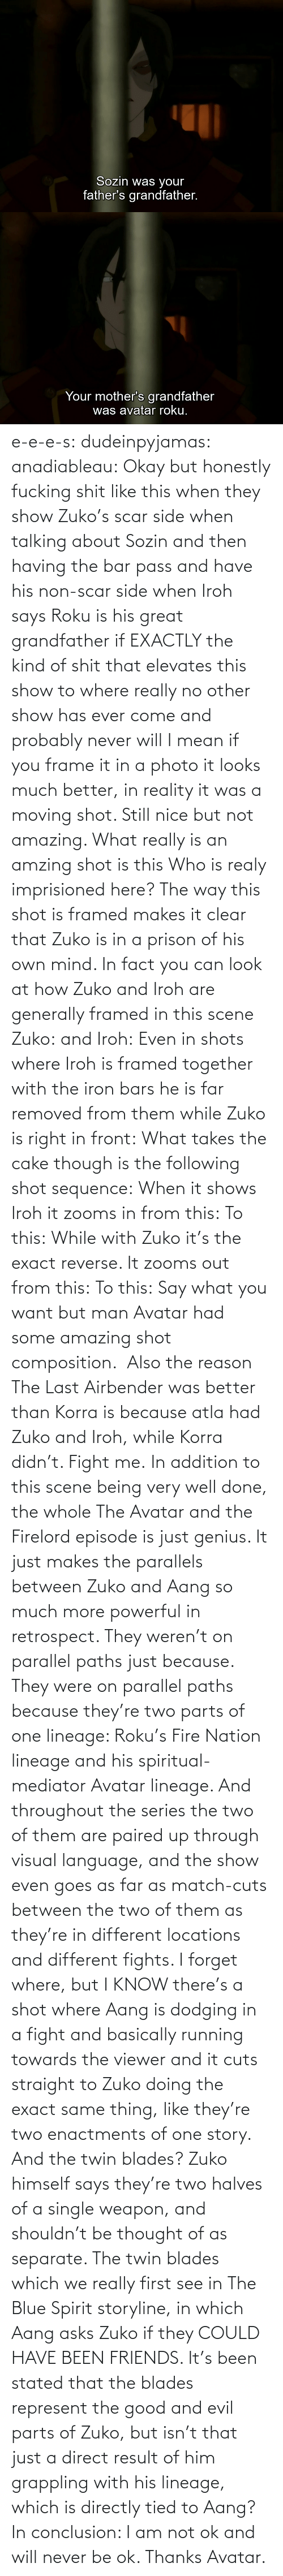 then: e-e-e-s: dudeinpyjamas:   anadiableau: Okay but honestly fucking shit like this when they show Zuko's scar side when talking about Sozin and then having the bar pass and have his non-scar side when Iroh says Roku is his great grandfather if EXACTLY the kind of shit that elevates this show to where really no other show has ever come and probably never will I mean if you frame it in a photo it looks much better, in reality it was a moving shot. Still nice but not amazing. What really is an amzing shot is this Who is realy imprisioned here? The way this shot is framed makes it clear that Zuko is in a prison of his own mind. In fact you can look at how Zuko and Iroh are generally framed in this scene Zuko: and Iroh: Even in shots where Iroh is framed together with the iron bars he is far removed from them while Zuko is right in front:  What takes the cake though is the following shot sequence: When it shows Iroh it zooms in from this: To this: While with Zuko it's the exact reverse. It zooms out from this: To this: Say what you want but man Avatar had some amazing shot composition.   Also the reason The Last Airbender was better than Korra is because atla had Zuko and Iroh, while Korra didn't. Fight me.    In addition to this scene being very well done, the whole The Avatar and the Firelord episode is just genius.  It just makes the parallels between Zuko and Aang so much more powerful in retrospect.  They weren't on parallel paths just because.  They were on parallel paths because they're two parts of one lineage: Roku's Fire Nation lineage and his spiritual-mediator Avatar lineage.  And throughout the series the two of them are paired up through visual language, and the show even goes as far as match-cuts between the two of them as they're in different locations and different fights.  I forget where, but I KNOW there's a shot where Aang is dodging in a fight and basically running towards the viewer and it cuts straight to Zuko doing the exact same thing, like they're two enactments of one story.   And the twin blades?  Zuko himself says they're two halves of a single weapon, and shouldn't be thought of as separate.  The twin blades which we really first see in The Blue Spirit storyline, in which Aang asks Zuko if they COULD HAVE BEEN FRIENDS.  It's been stated that the blades represent the good and evil parts of Zuko, but isn't that just a direct result of him grappling with his lineage, which is directly tied to Aang? In conclusion: I am not ok and will never be ok.  Thanks Avatar.